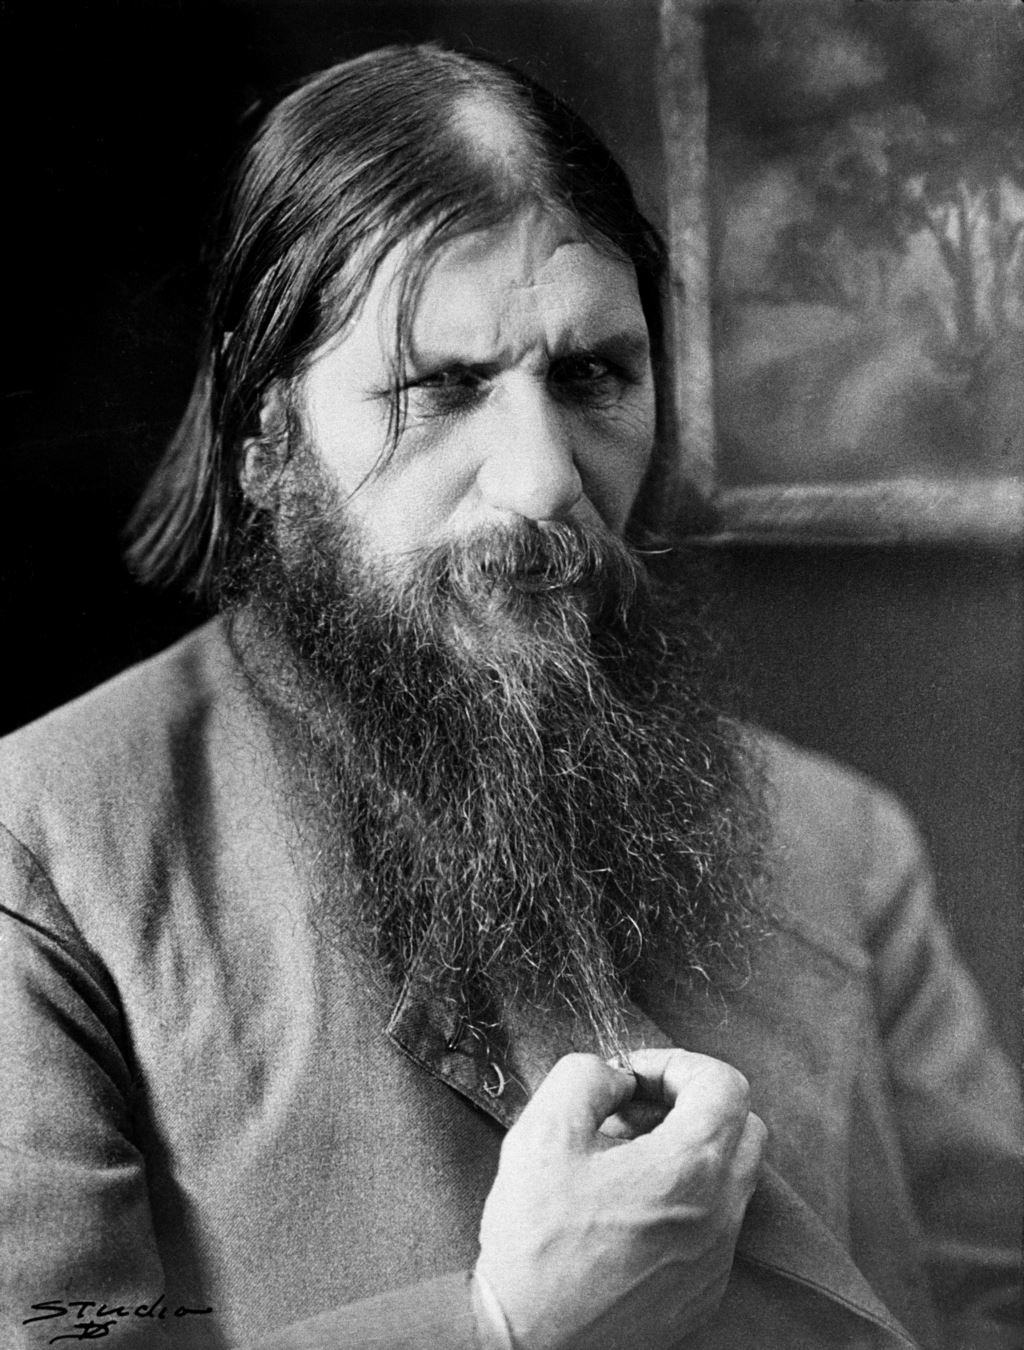 http://upload.wikimedia.org/wikipedia/commons/a/a4/Rasputin_pt.jpg